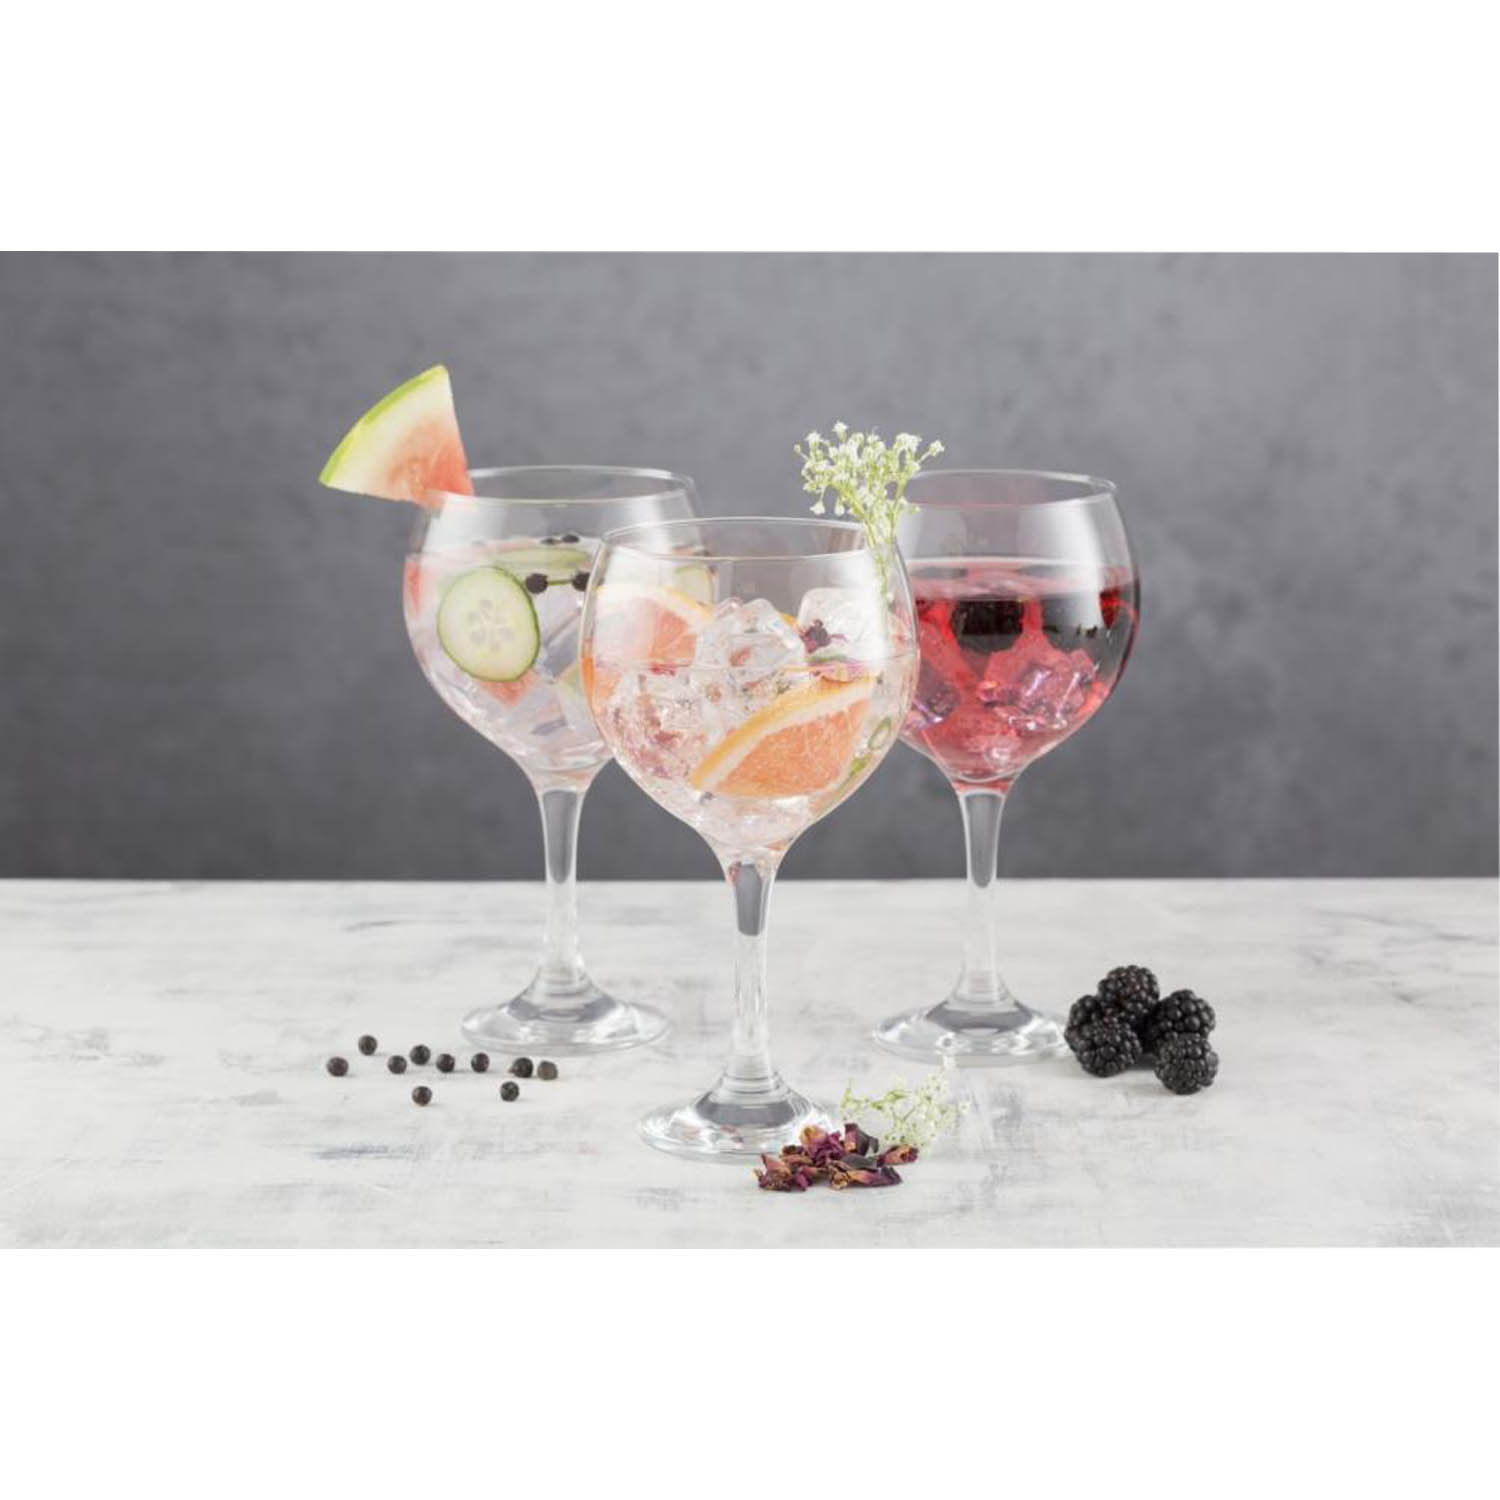 Chic /& Tonic Vibin On The Island Fishbowl Cocktail Glasses Set of 4 SEE PICTURES